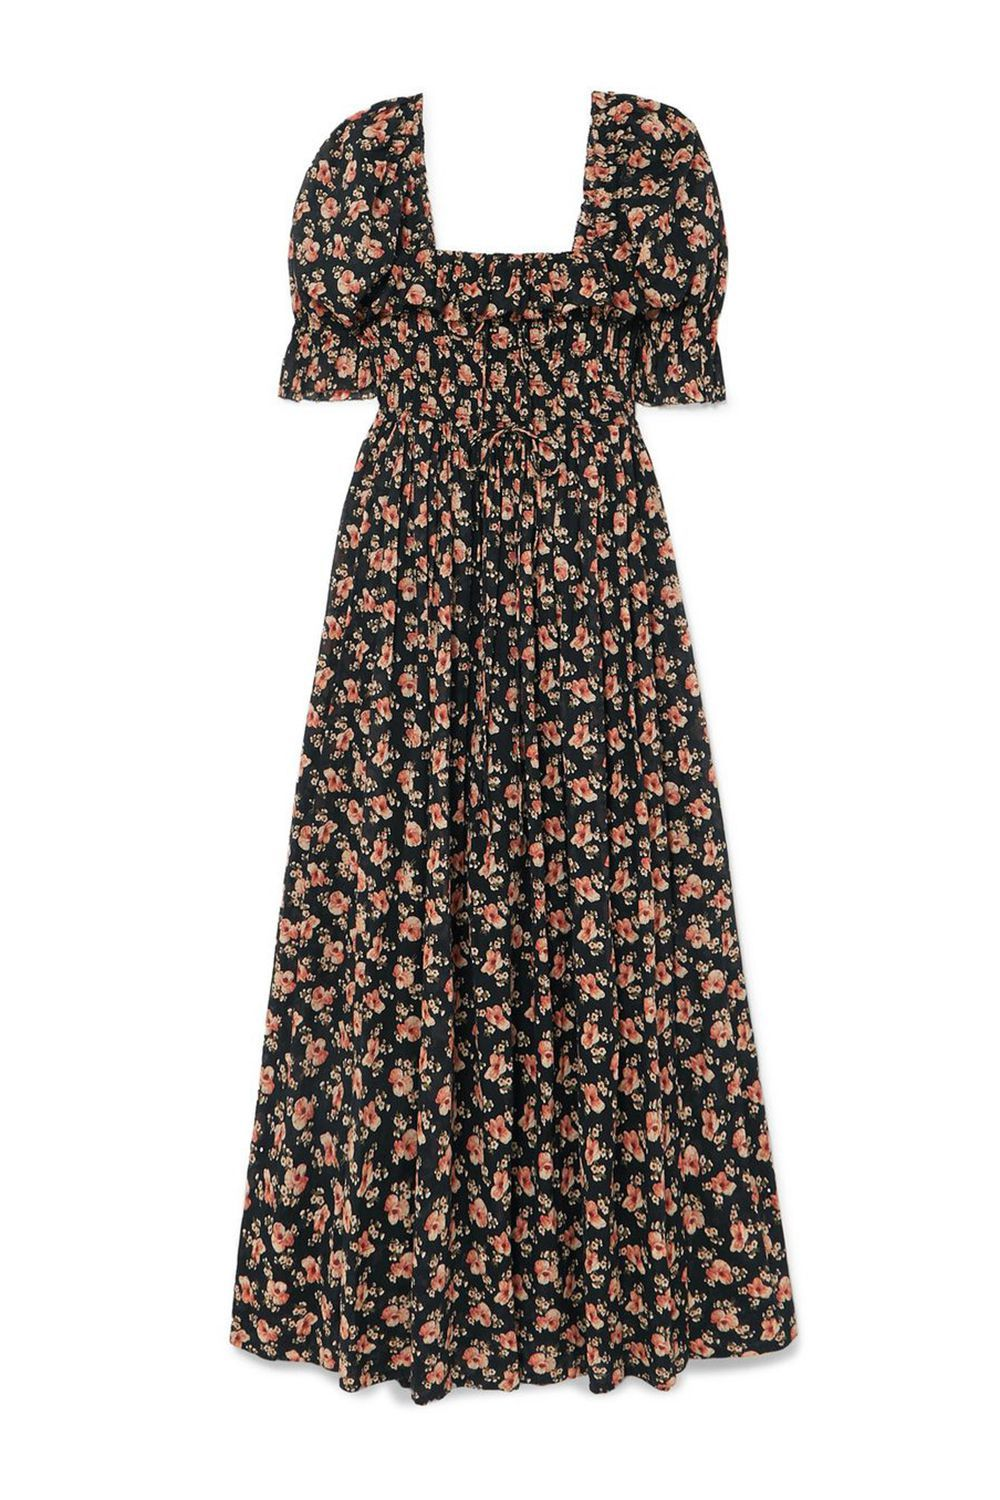 Best for Country Weddings Floral Print Cotton-Voile Maxi Dress DÔEN net-a-porter.com $298.00 SHOP IT Attending a wedding on a farm or ranch? Rock a milkmaid dress to be on your best bohemian a-game.